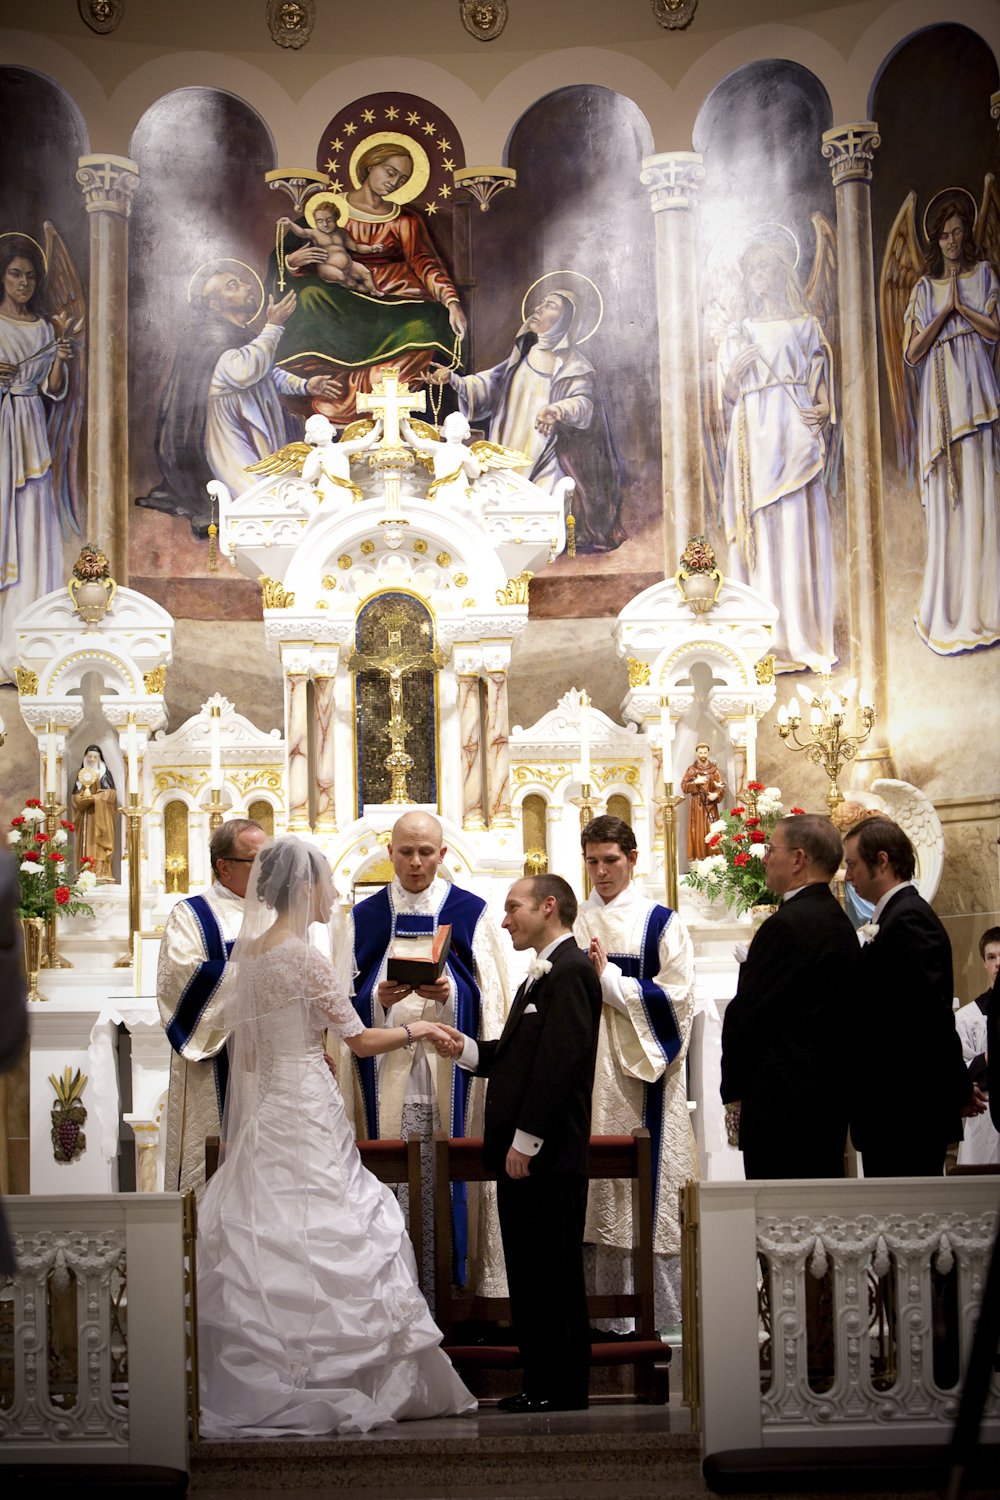 Indianapolis-Indiana-Wedding-photographer-Holy-Rosery-Catholic-church-Crowes-Eye-Photography.jpg